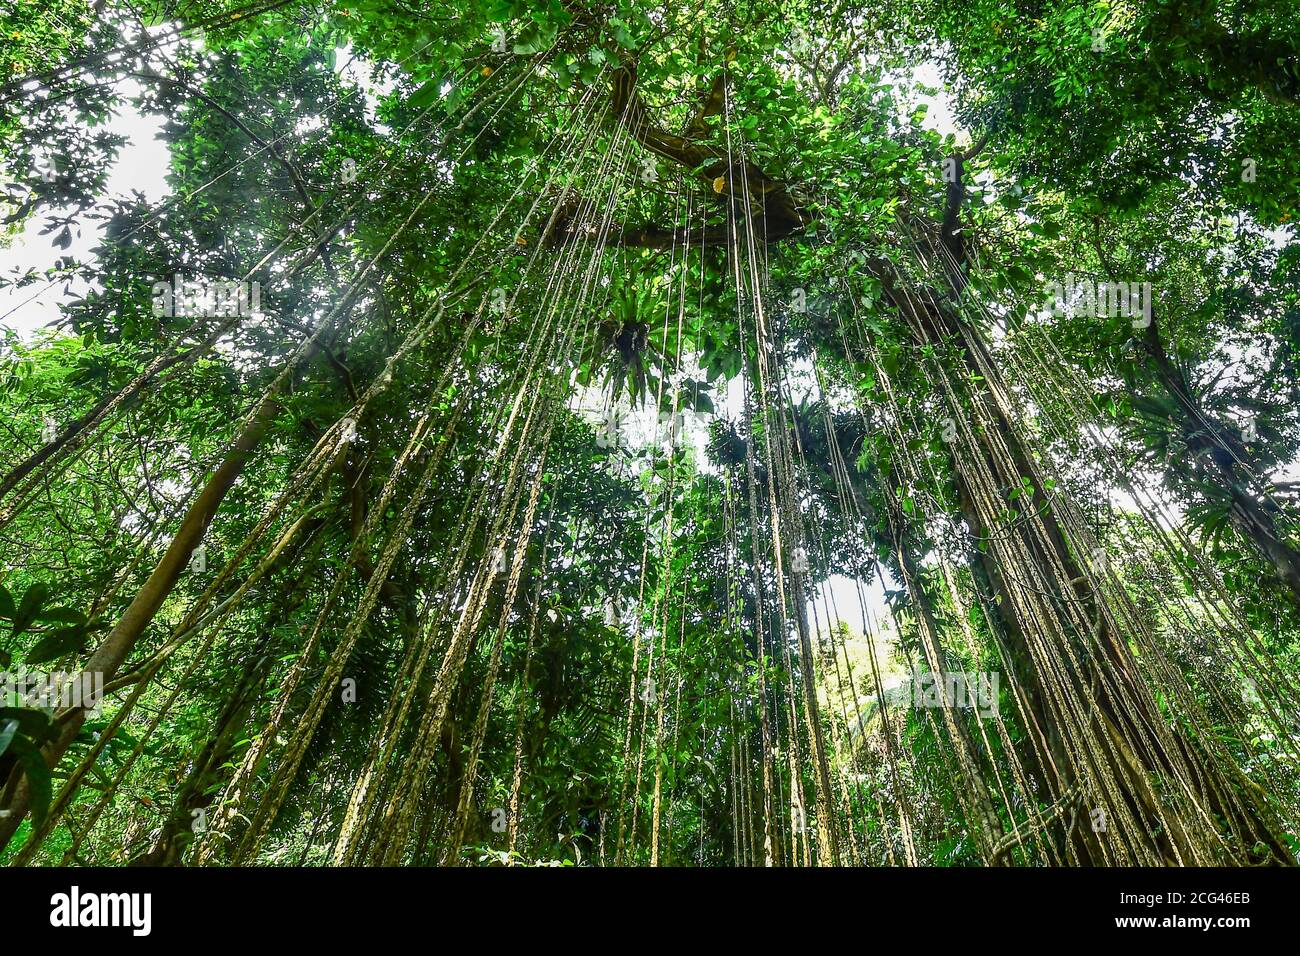 Haikou. 2nd Sep, 2020. Photo taken on Sept. 2, 2020 shows aerial roots in a tropical  rainforest in south China's Hainan Province. Credit: Pu Xiaoxu/Xinhua/Alamy  Live News Stock Photo - Alamy